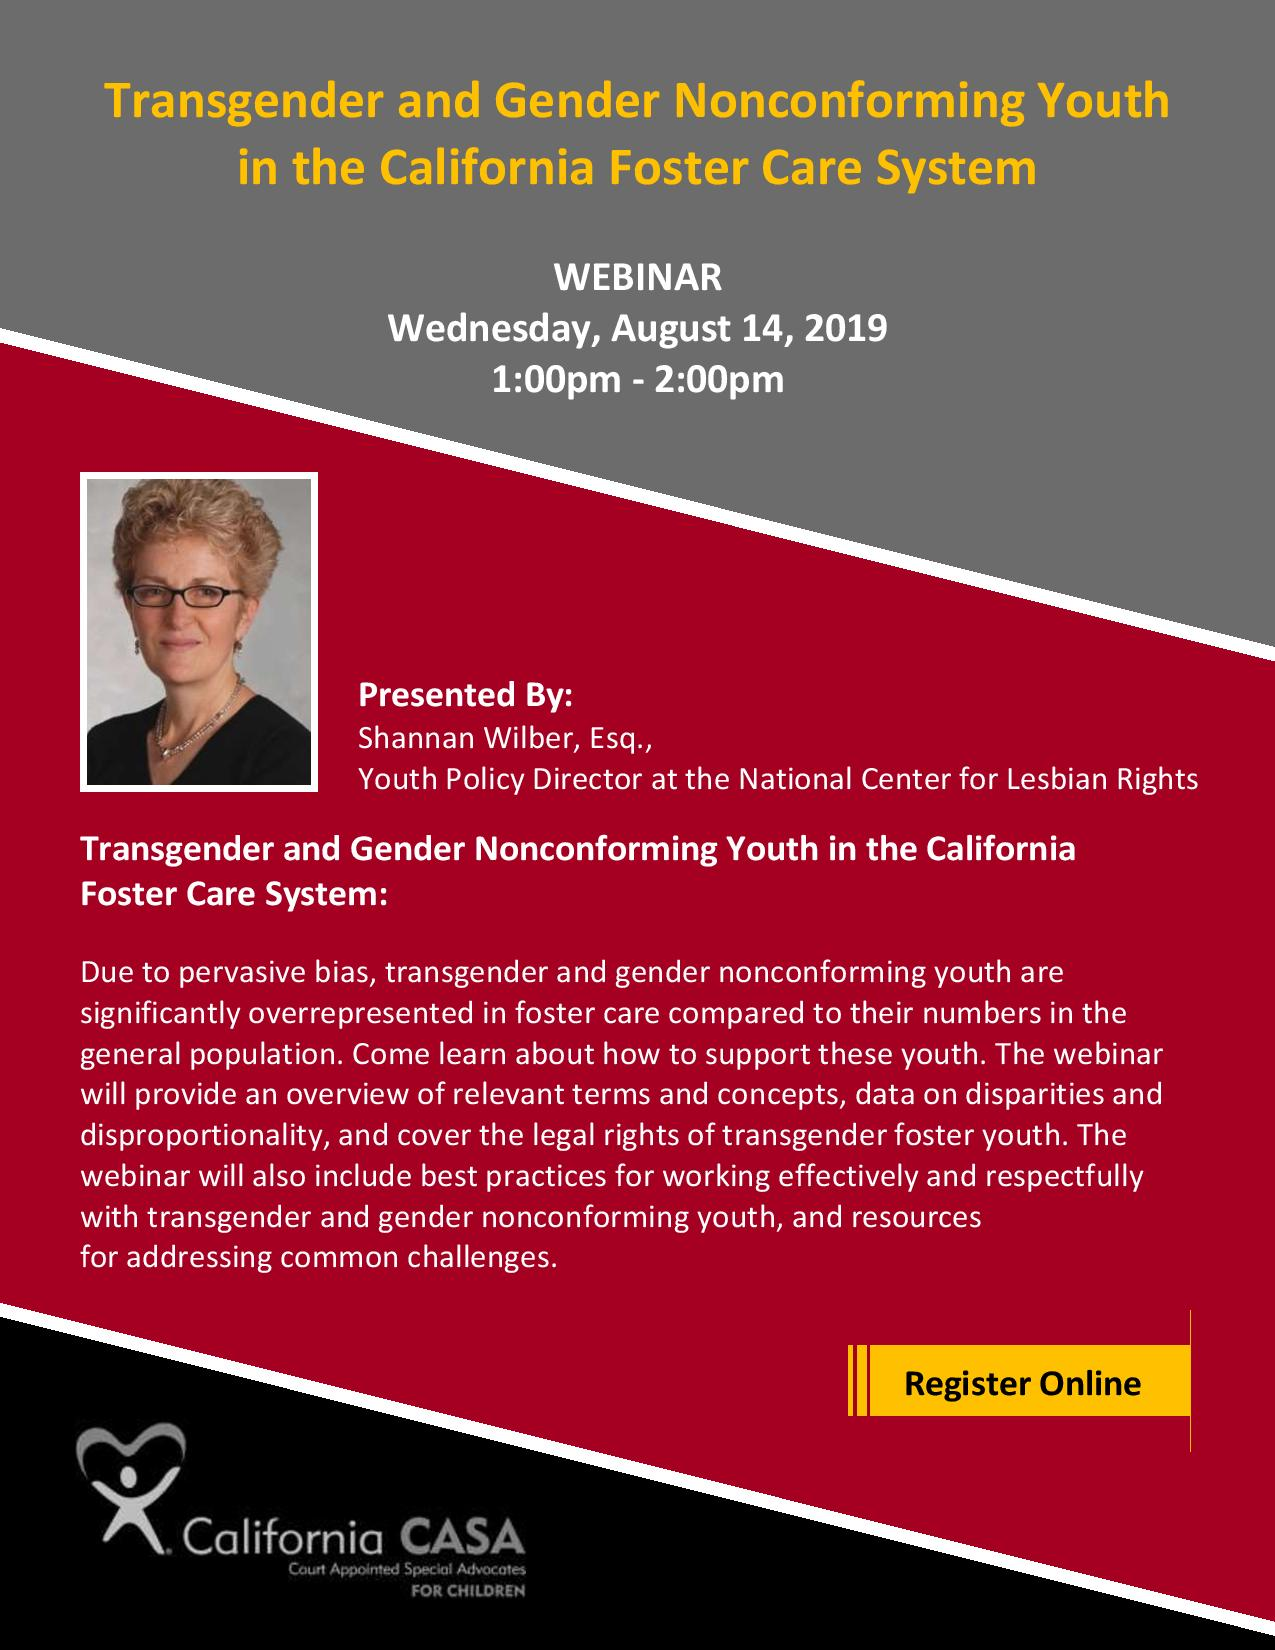 Register today for this FREE webinar on Wednesday August 14th @ 1PM